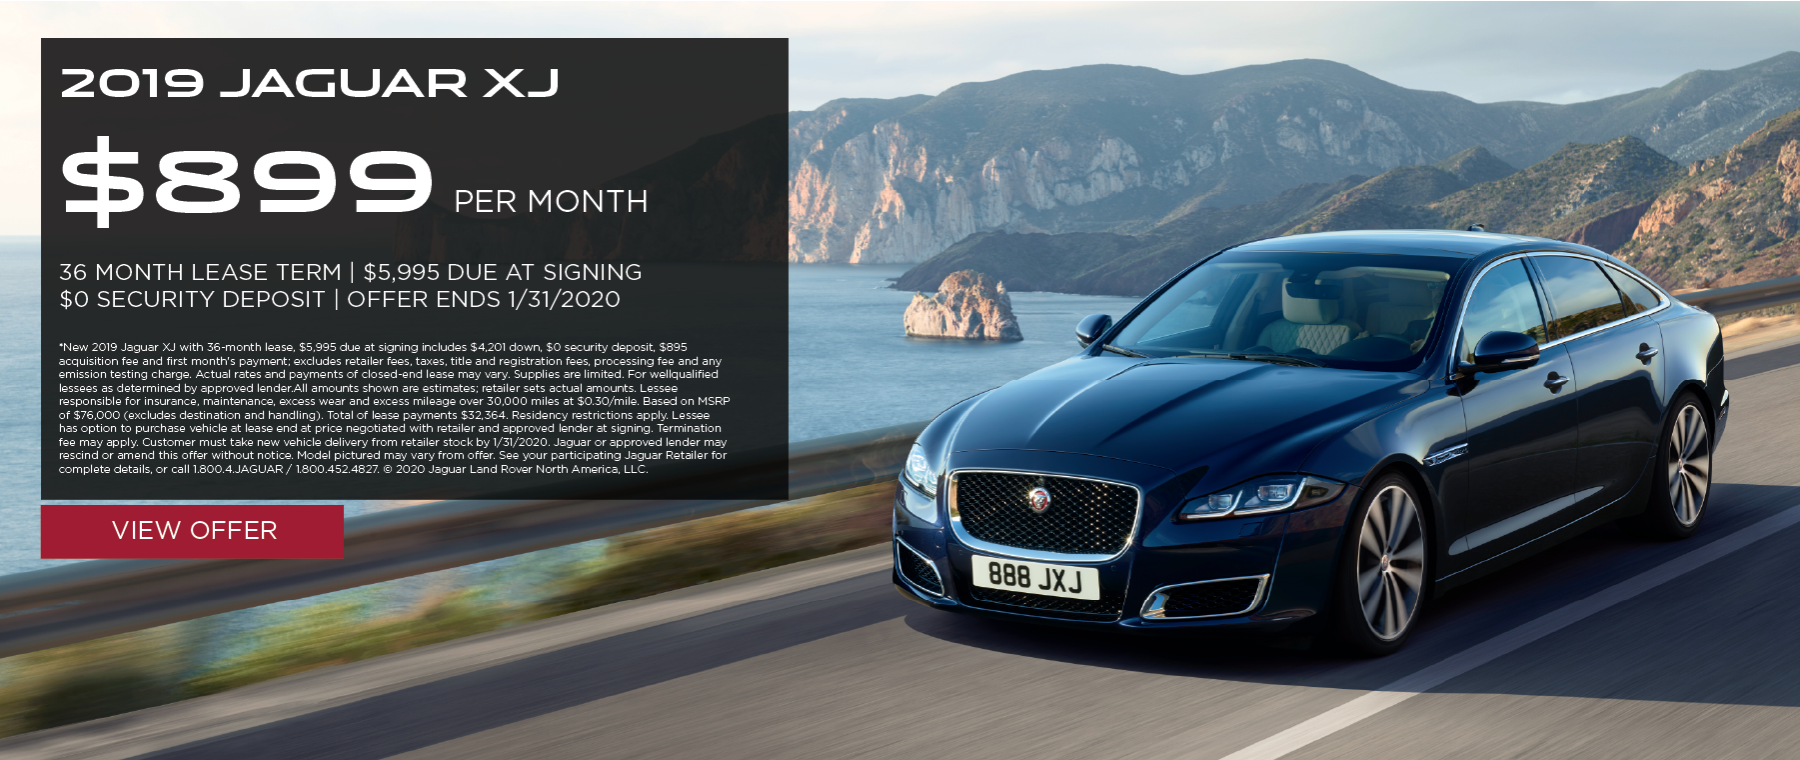 2019 Jaguar XJ | $899/month | 36-month lease | 10,000 miles/year | $5,995 due at signing | $0 security deposit | expires 1/31/2020